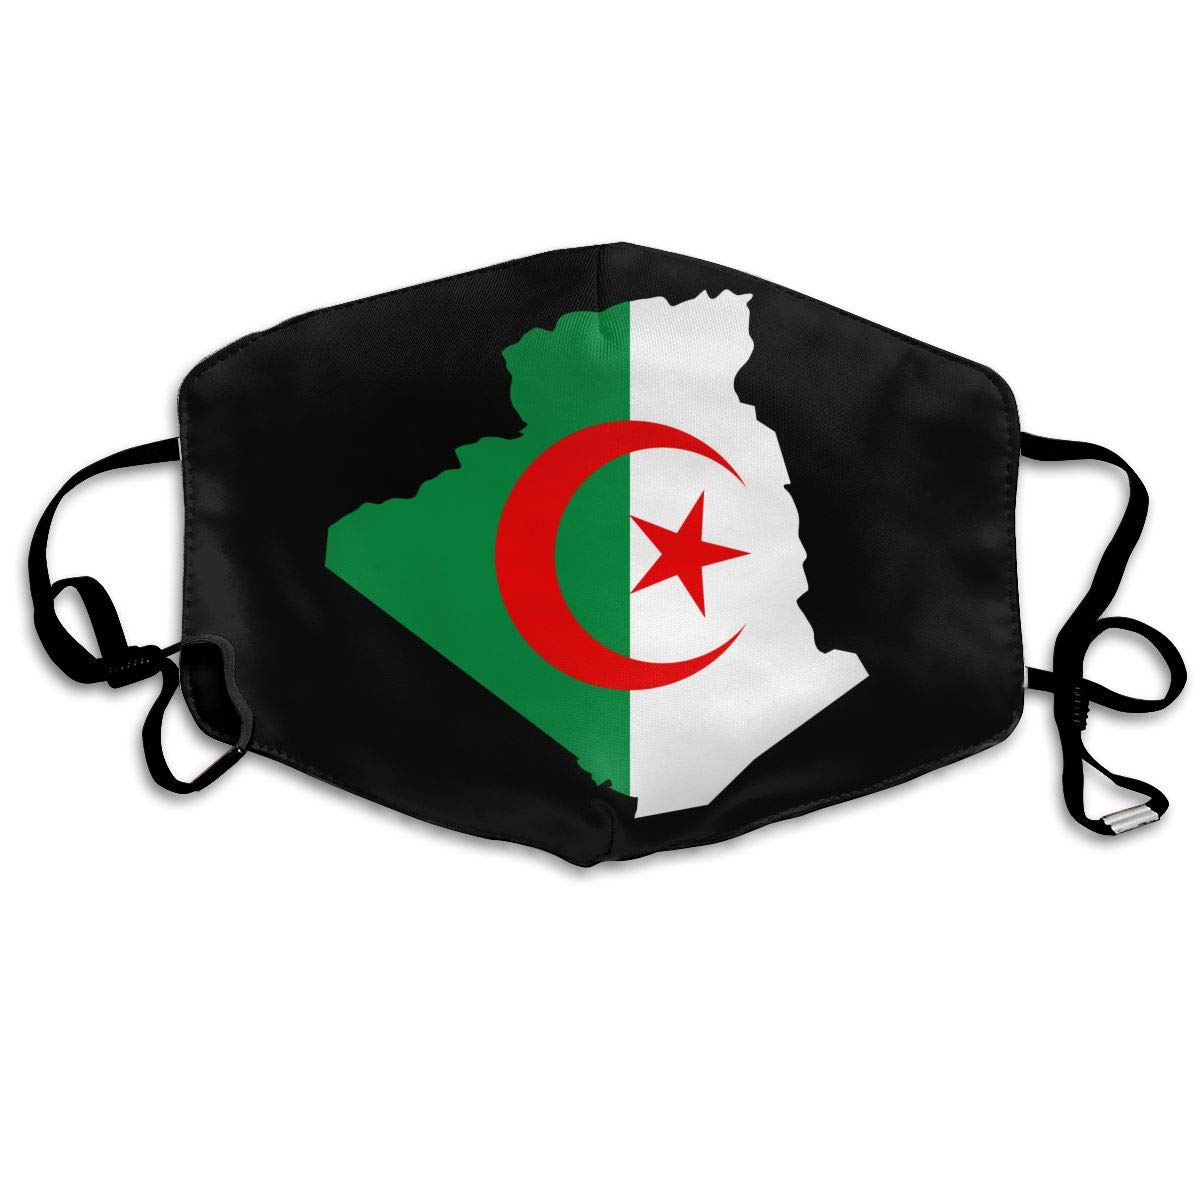 Flag Of Algeria Washable Reusable   Mask, Cotton Anti Dust Half Face Mouth Mask For Kids Teens Men Women With Adjustable Ear